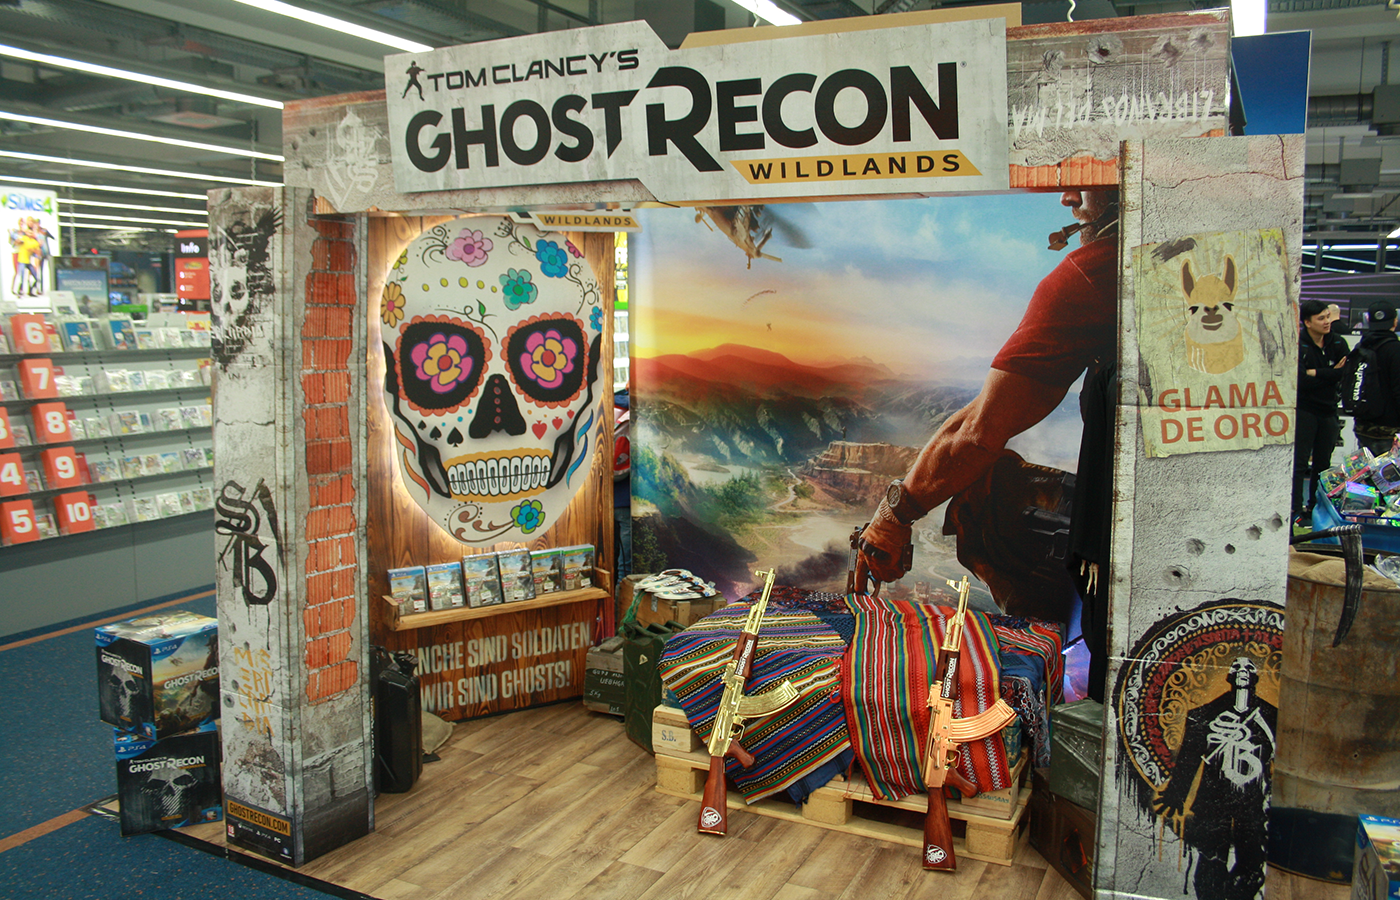 Ubisoft – Ghost Recon Wildlands 2017 In-Store Promotion